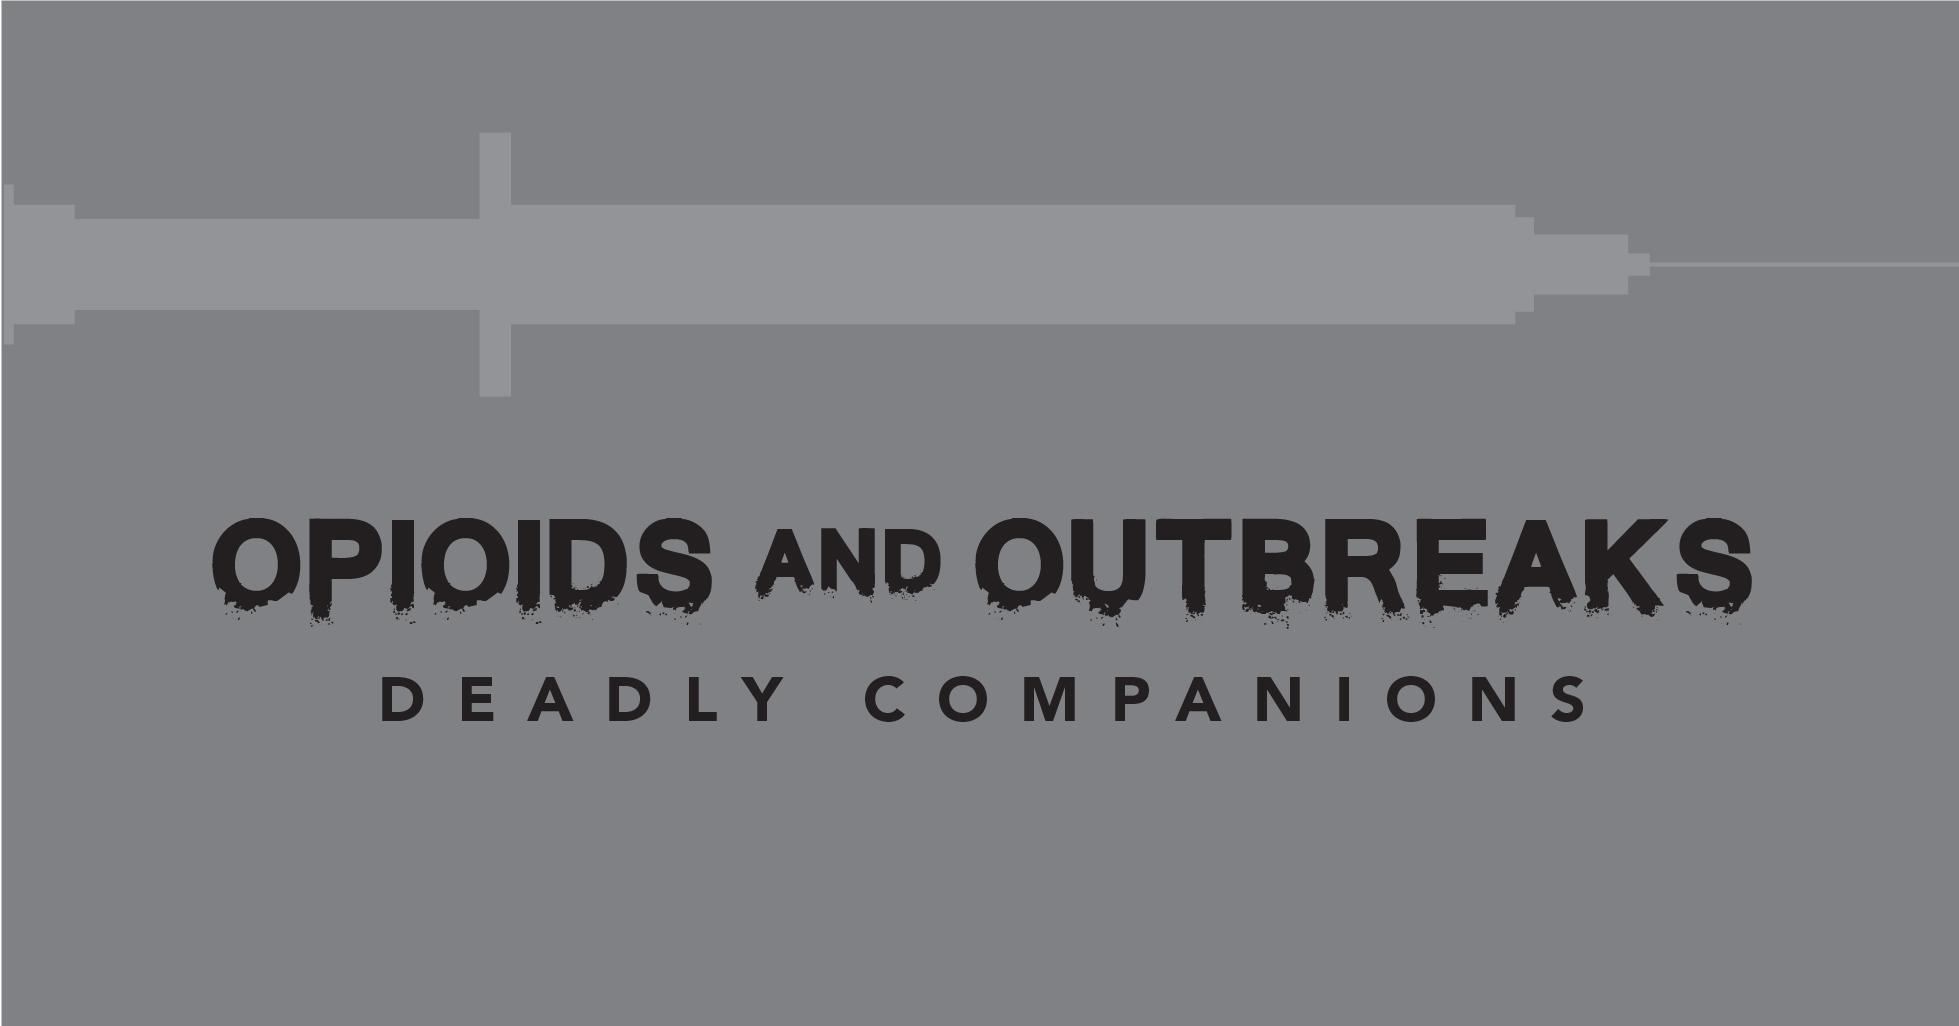 Opioids and outbreaks-01